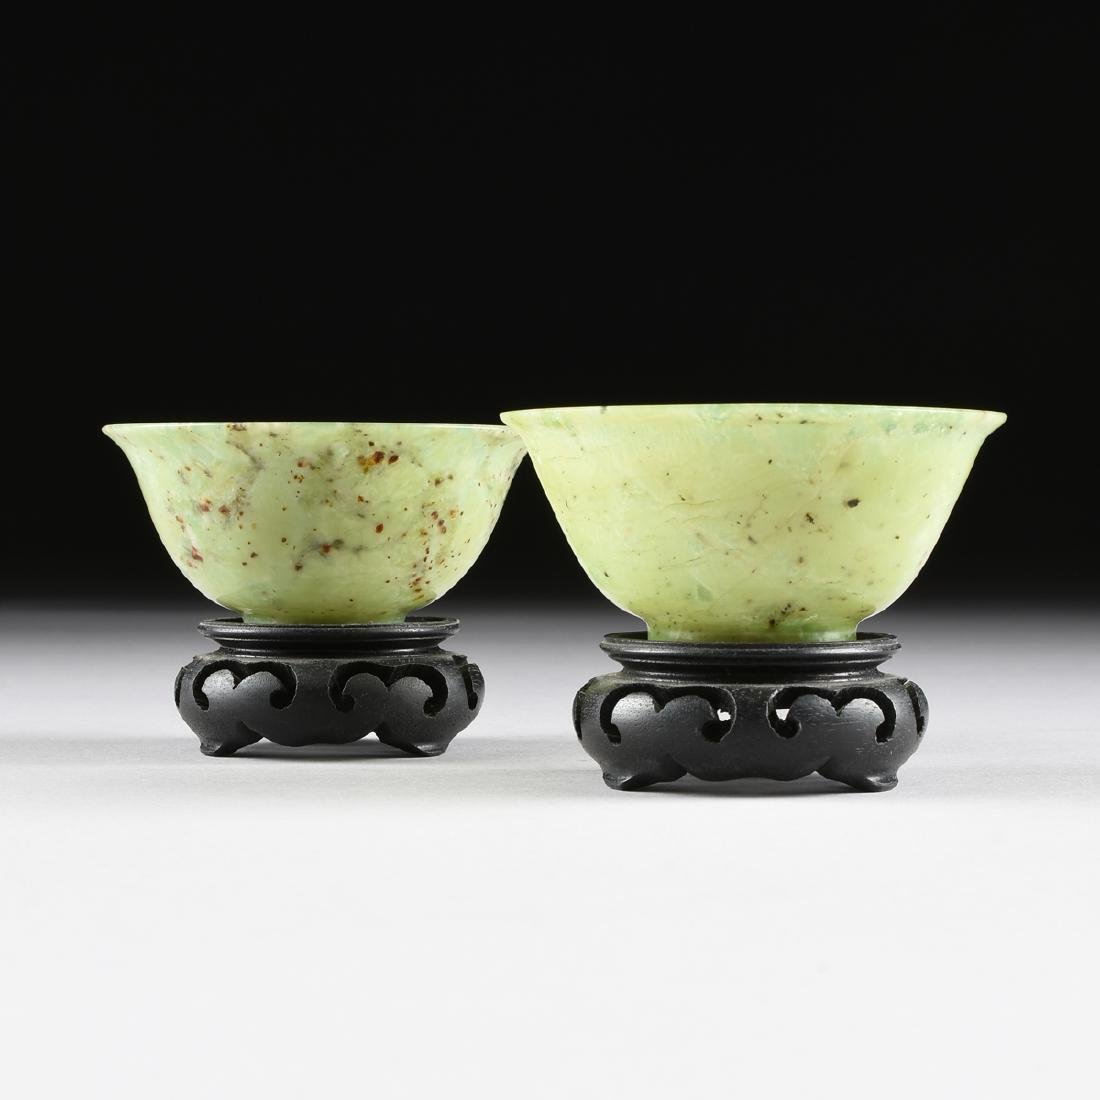 A PAIR OF CHINESE TRANSLUCENT MOTTLED GREEN JADE BOWLS,